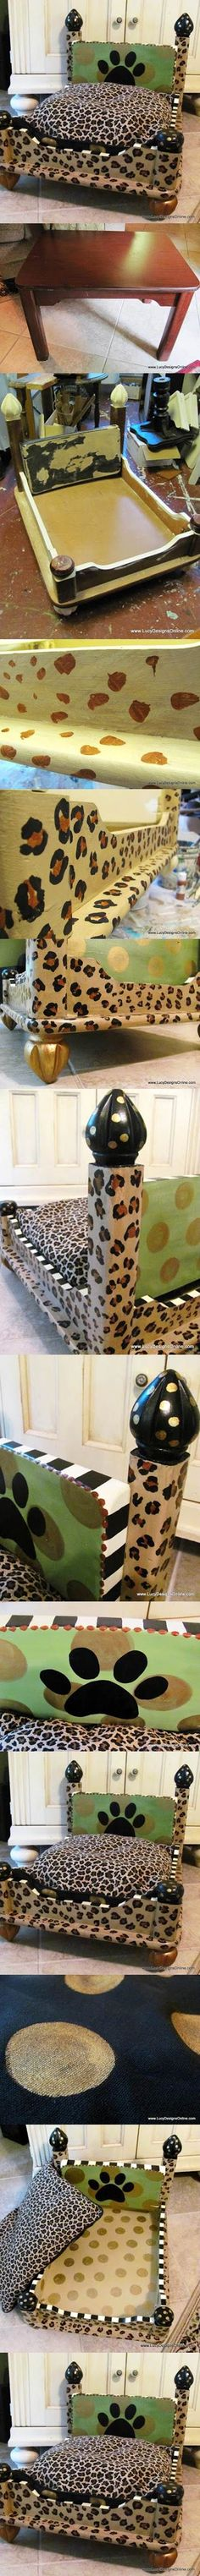 DIY Leopard Print Dog Bed from an End Table